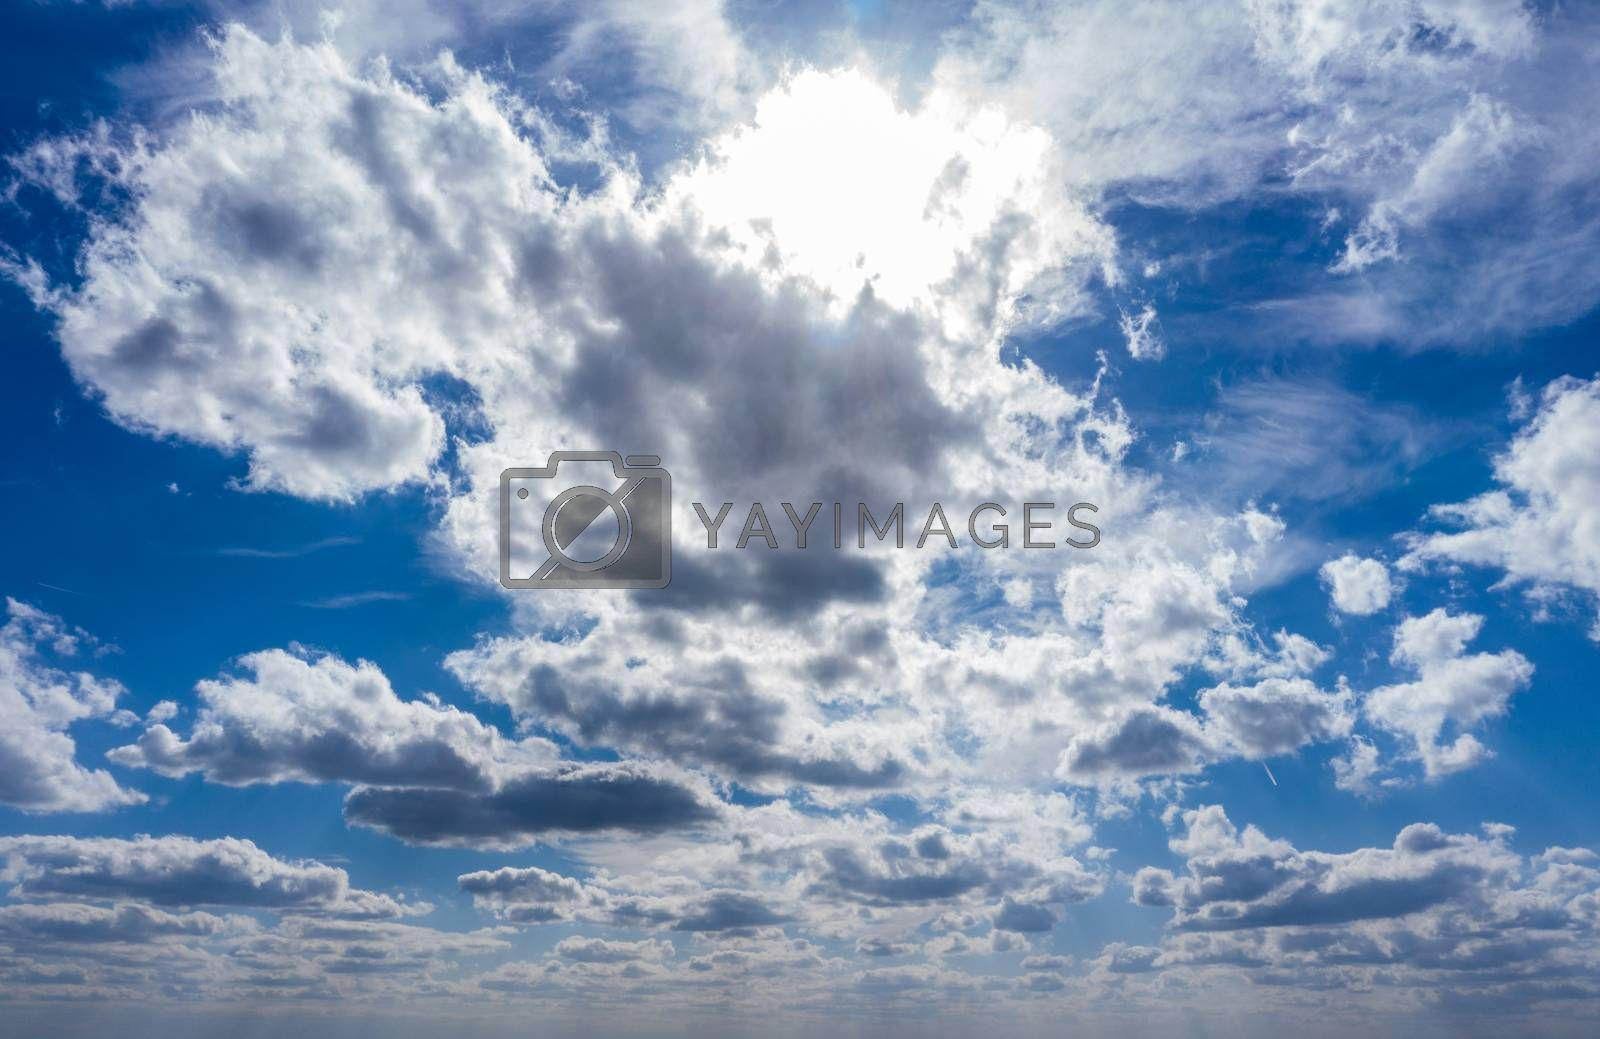 The sun with bright rays in the blue sky with white light clouds